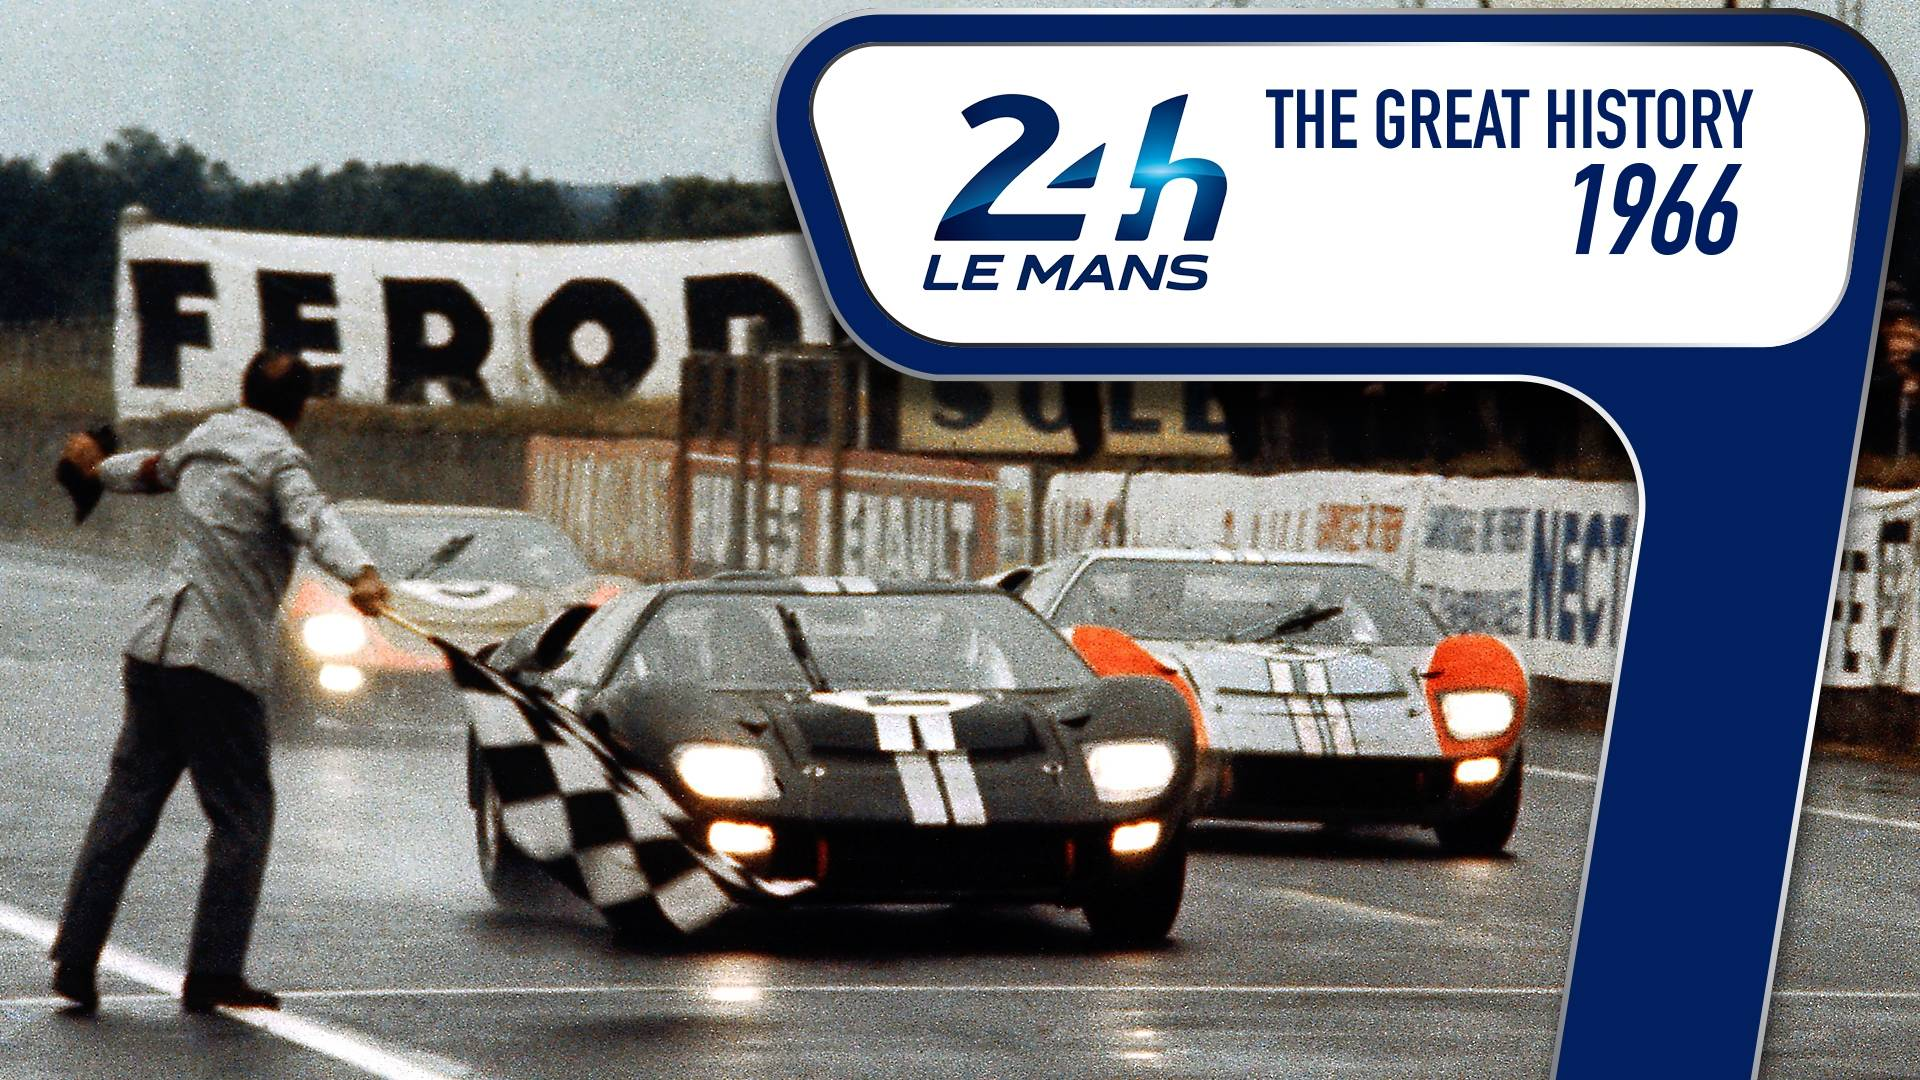 /join/tvSlider/24 Hours of Le Mans: The Great History